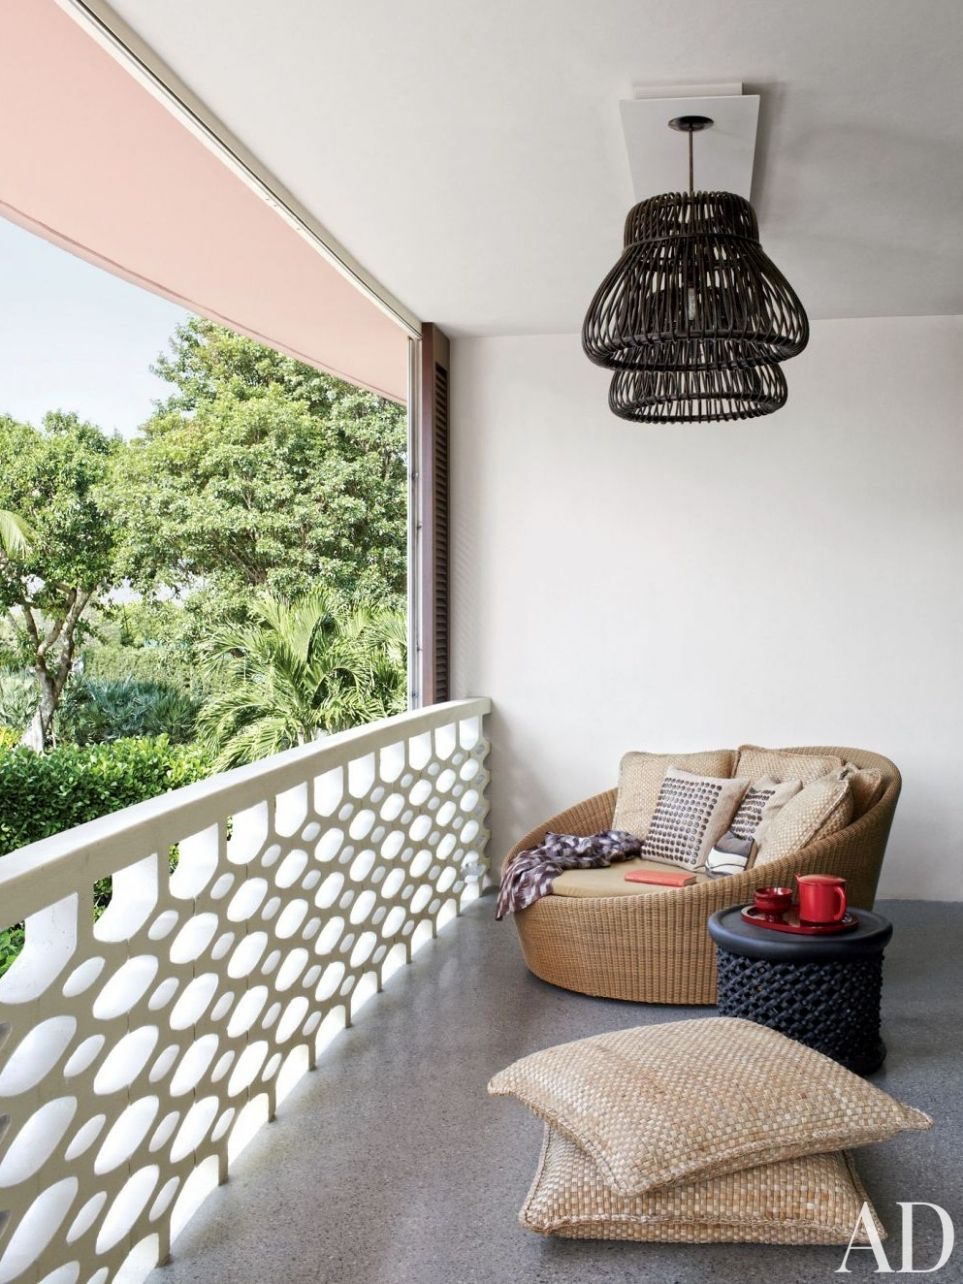 11 Cozy Balcony Ideas and Decor Inspiration | Architectural Digest - balcony building ideas